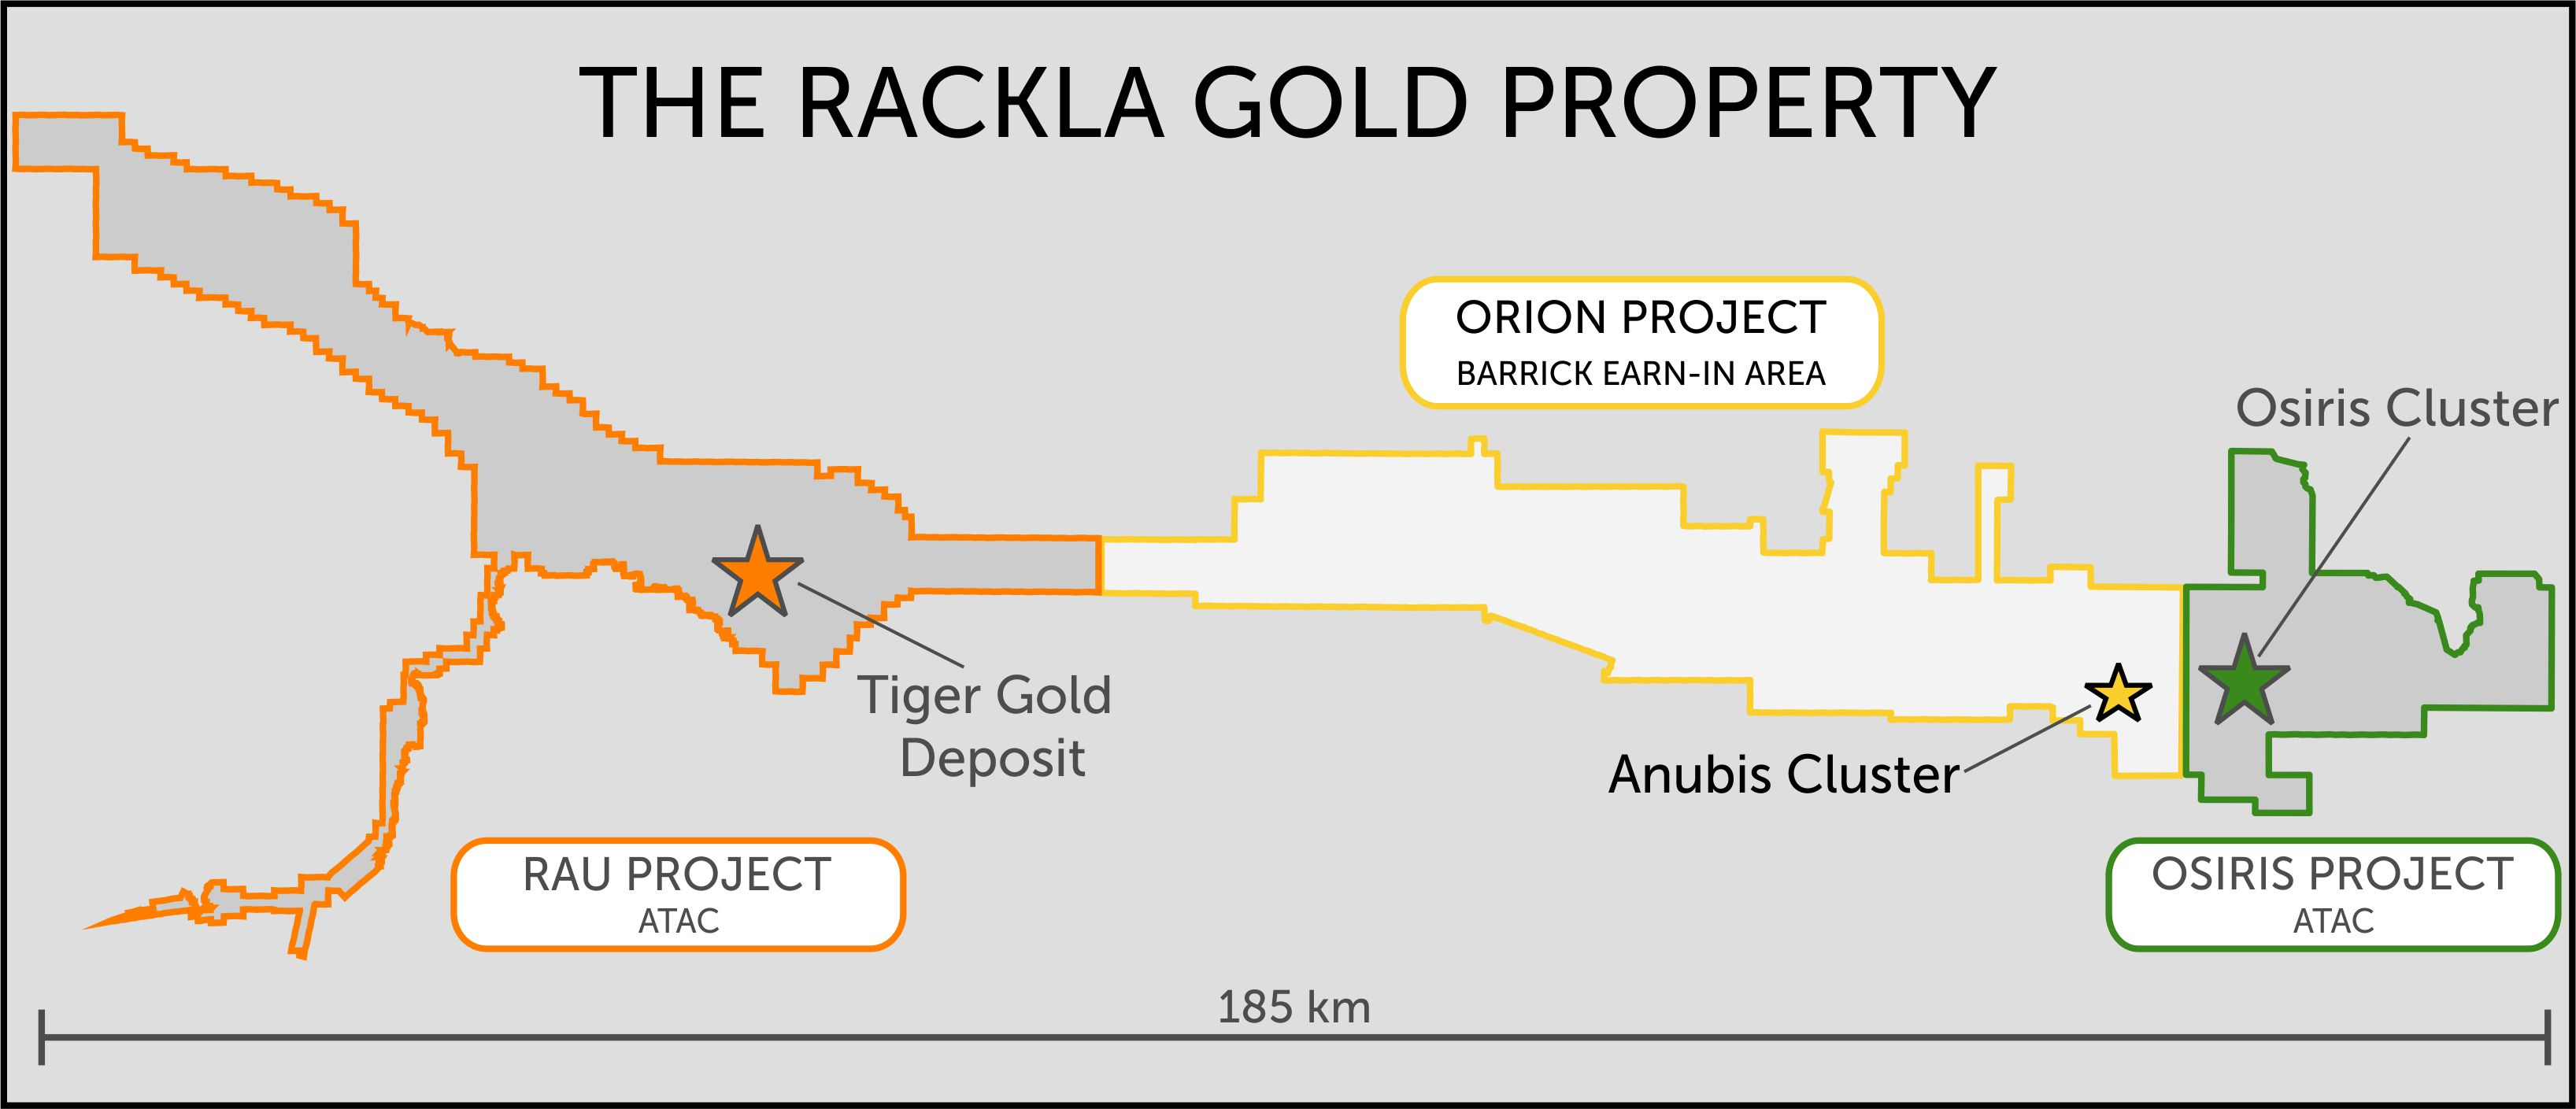 barrick gold corporation Results 1 - 50 of 66  anglogold ashanti limited vs barrick gold corporation - peer comparison:  anglogold ashanti and barrick remain broadly comparable at.